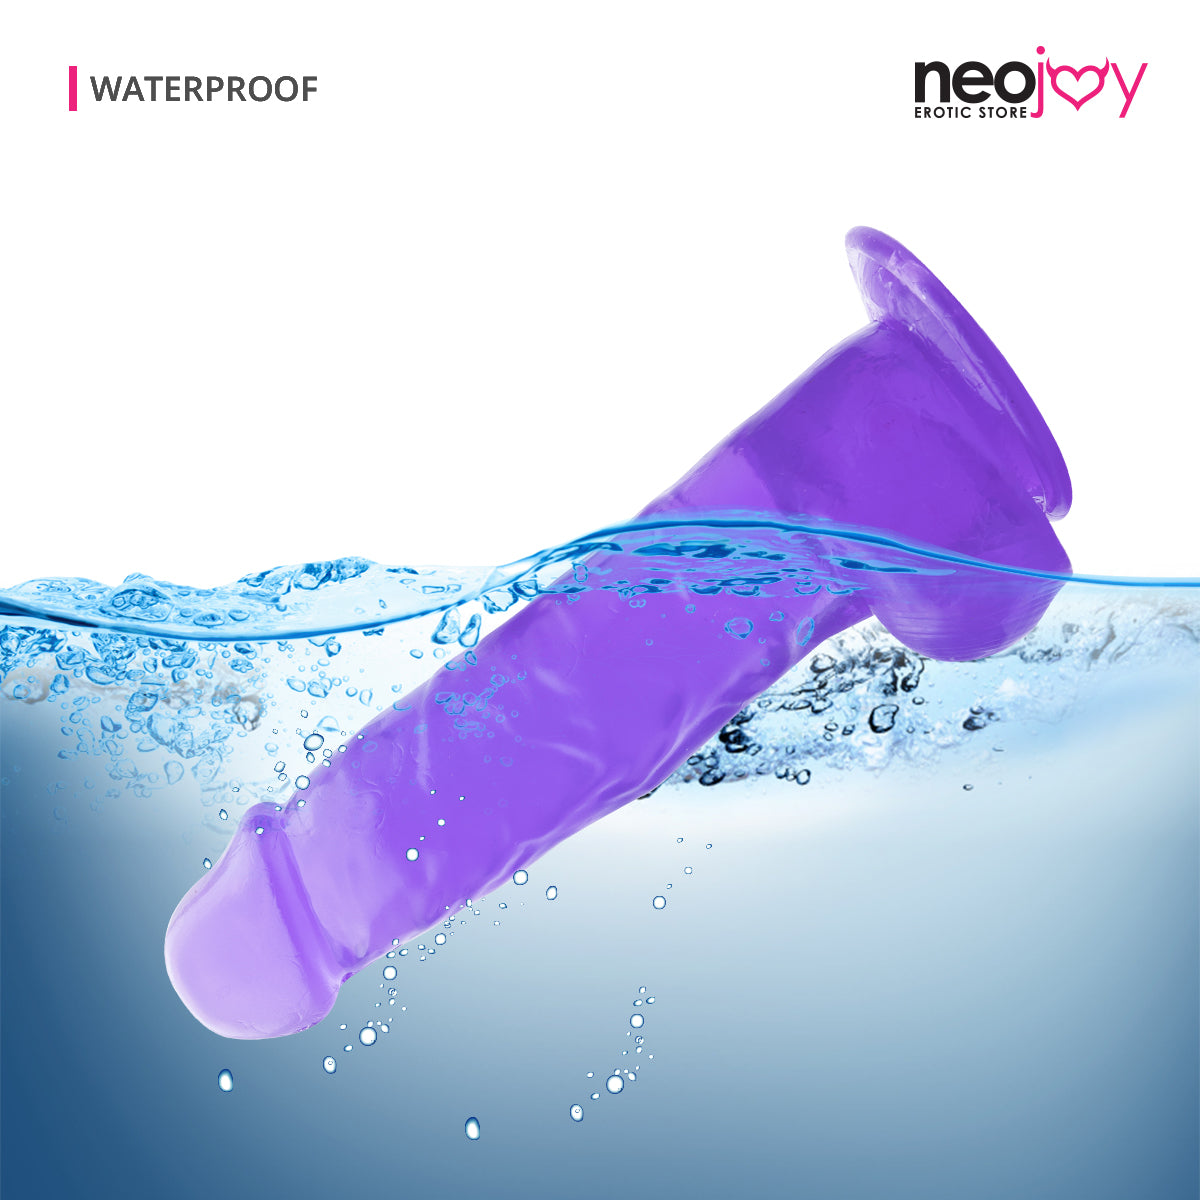 "Neojoy Jelly Willy 8.86"" Soft TPE Dildo - 22.5cm - Purple"